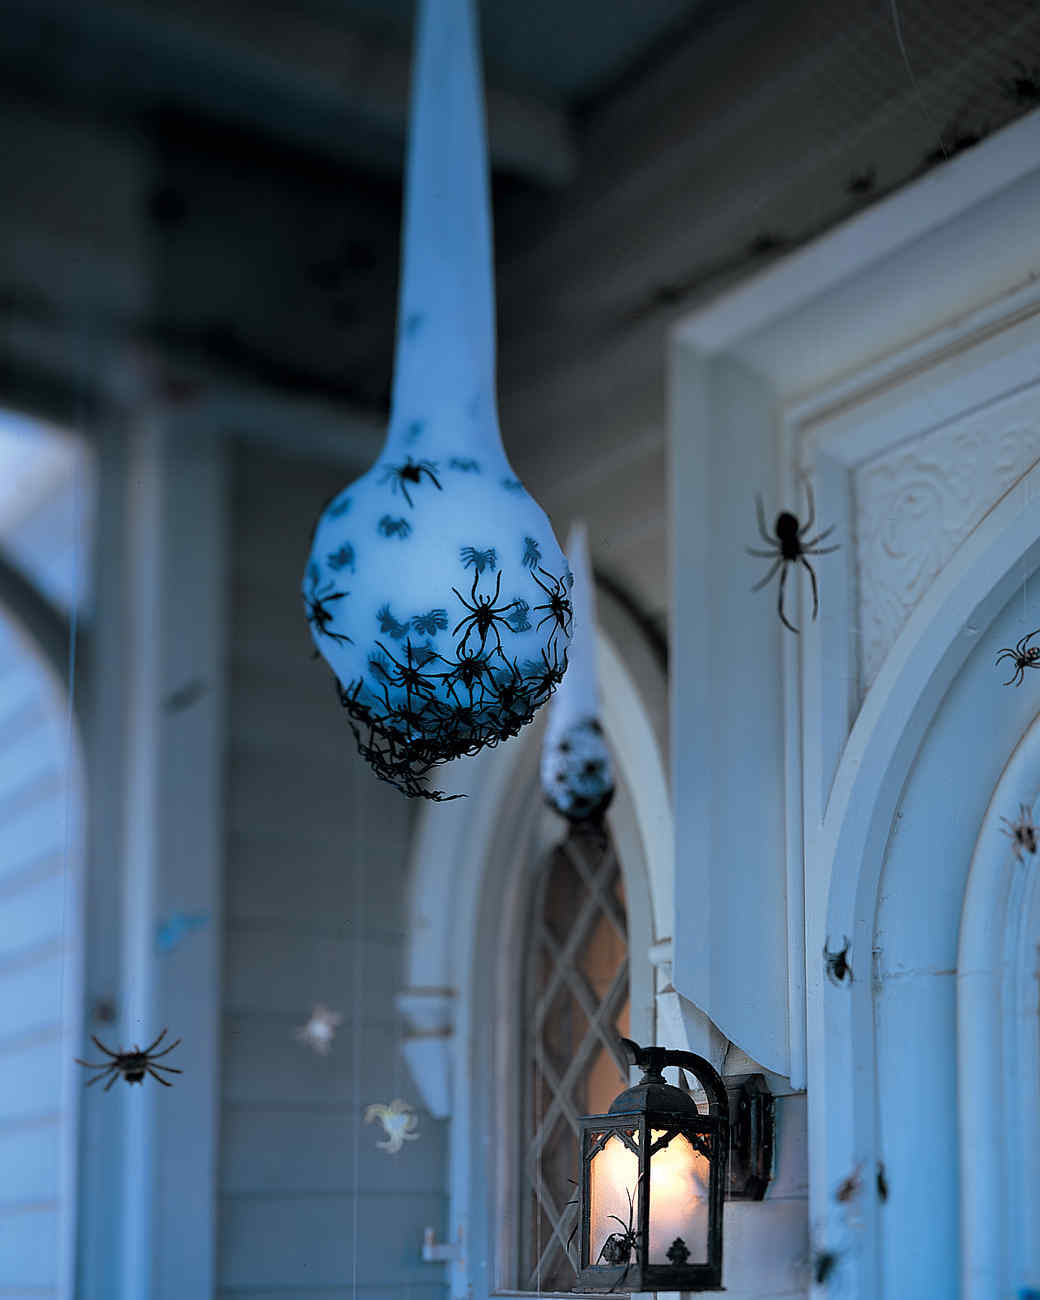 Scary Halloween Decorations That\u0027ll Give You The Jitters